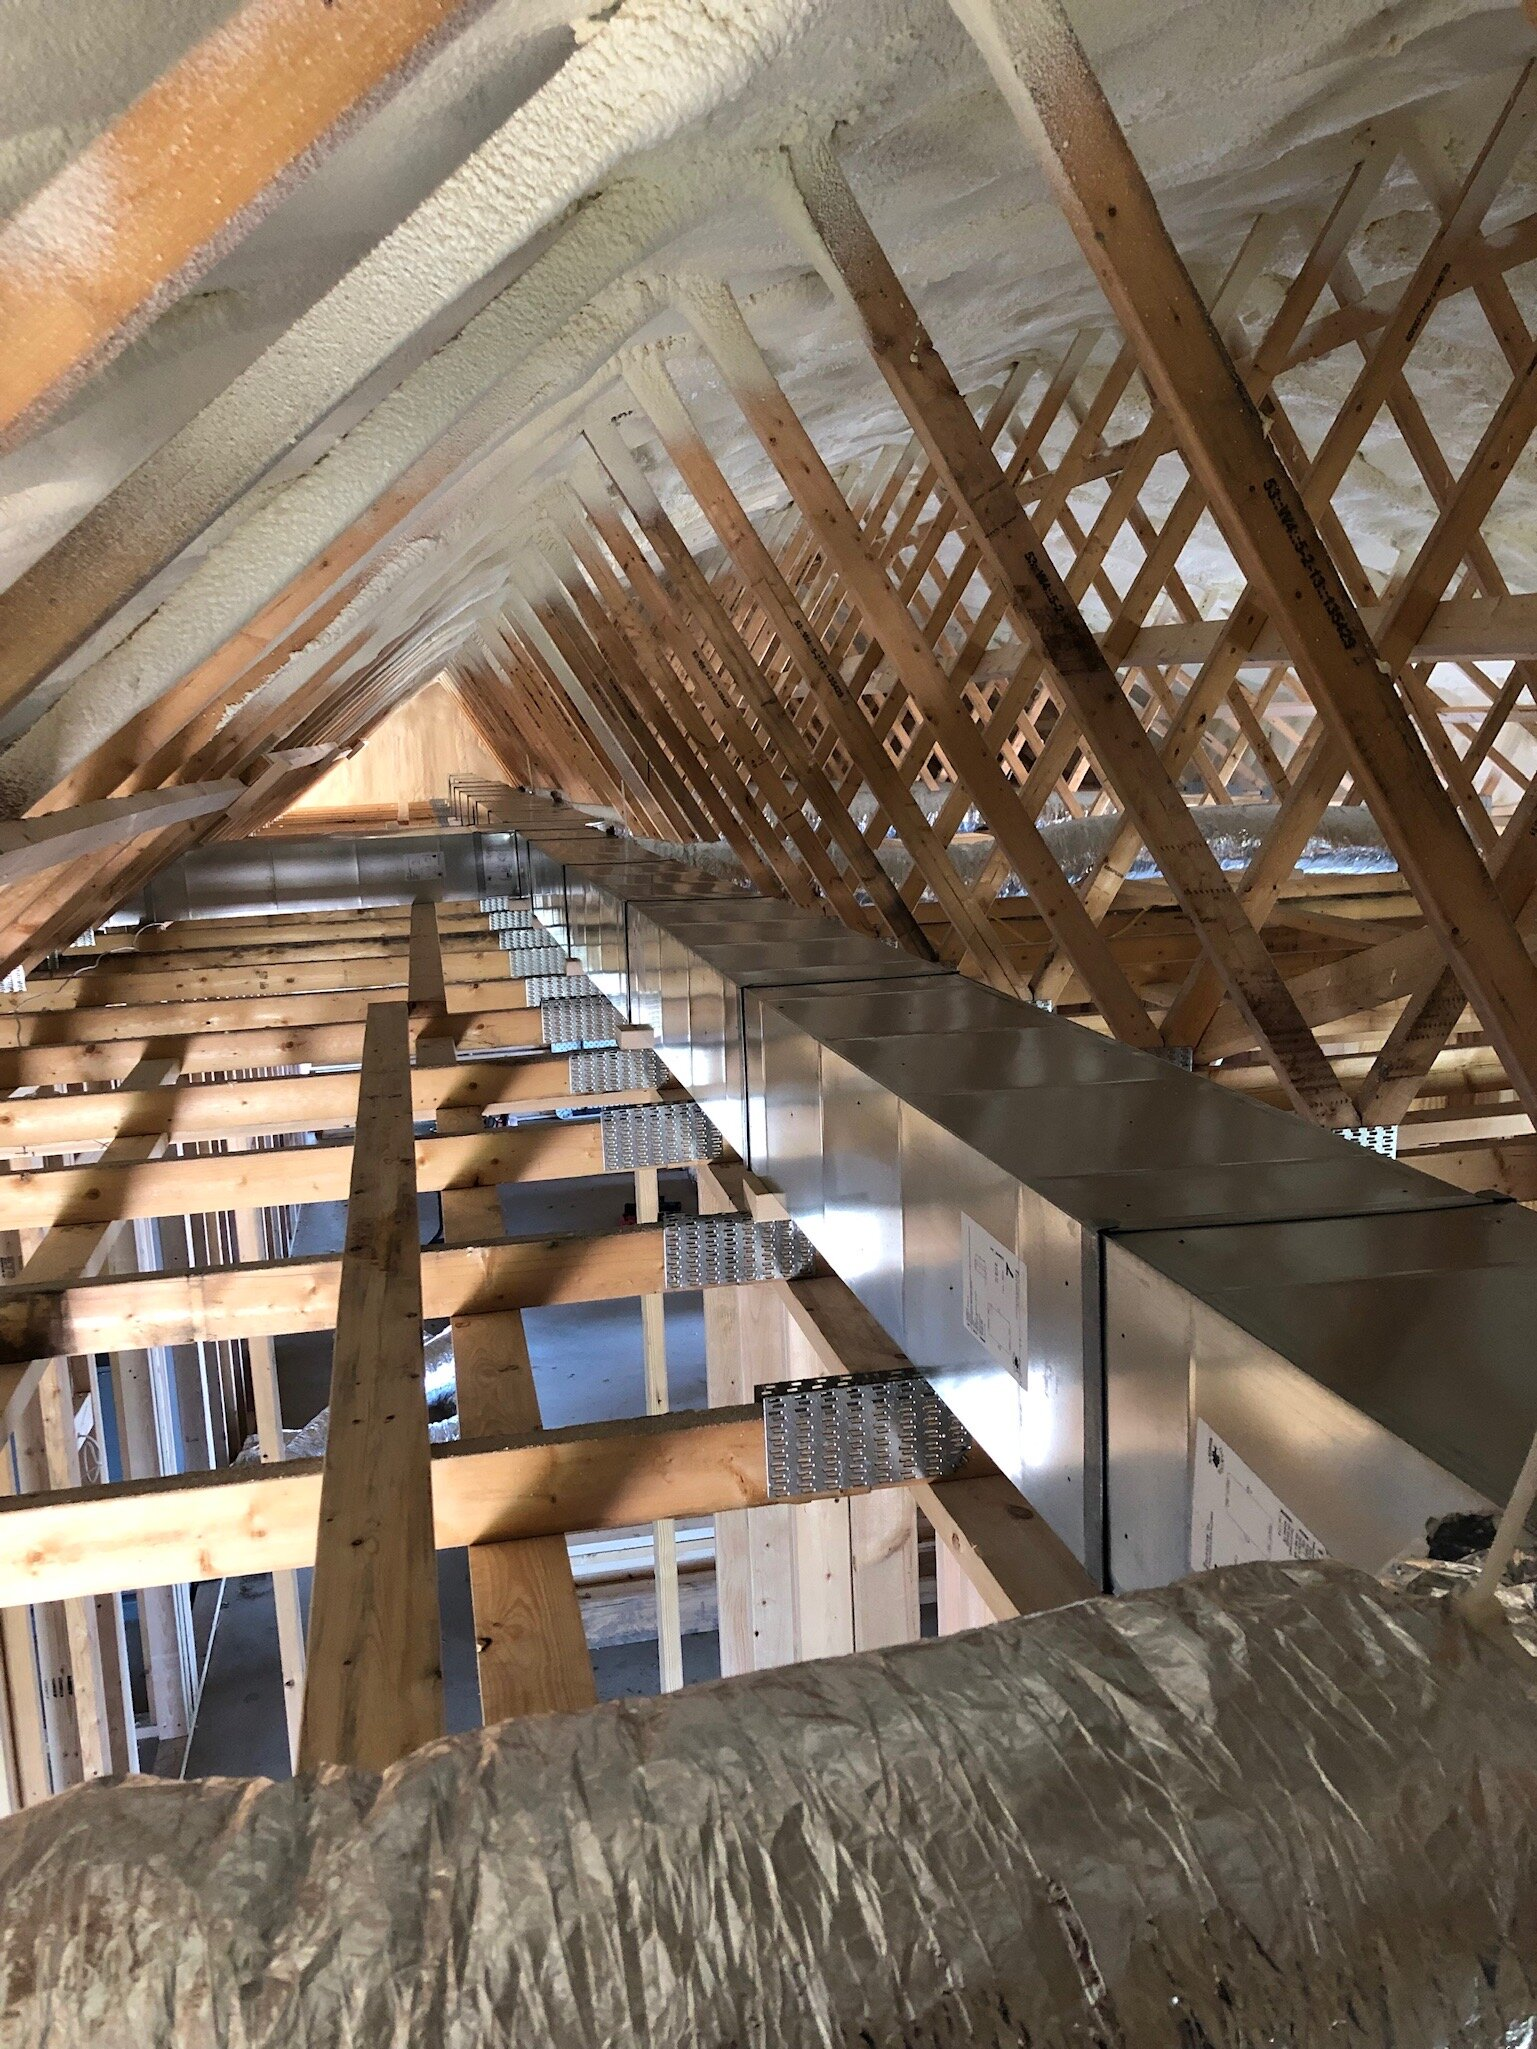 A view of the insulation and rafters.